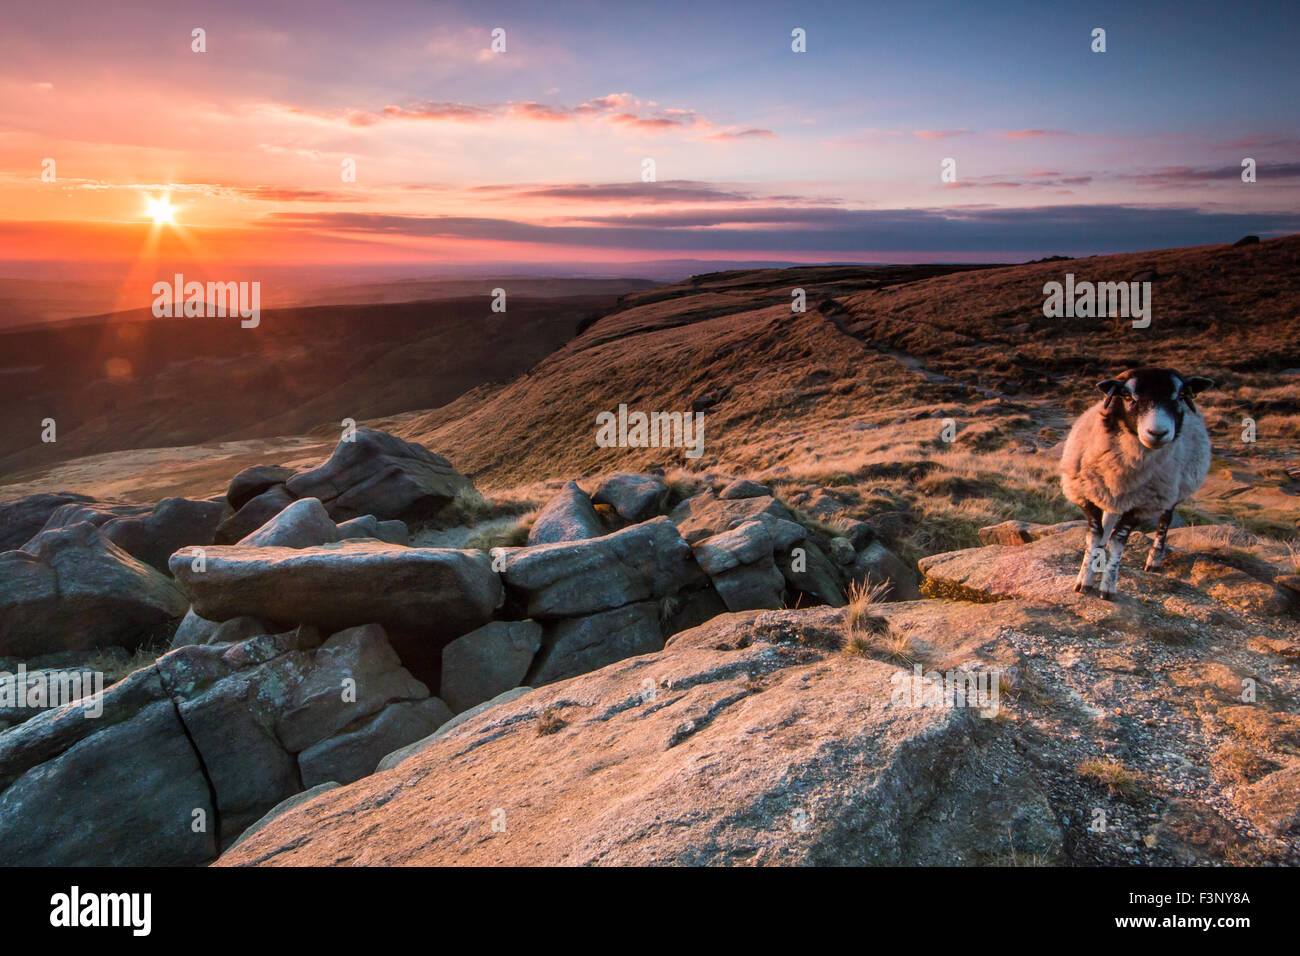 View of the sunset and sheet from the Pennine Way on Kinder Scout, the highest point in the Peak District, England. - Stock Image